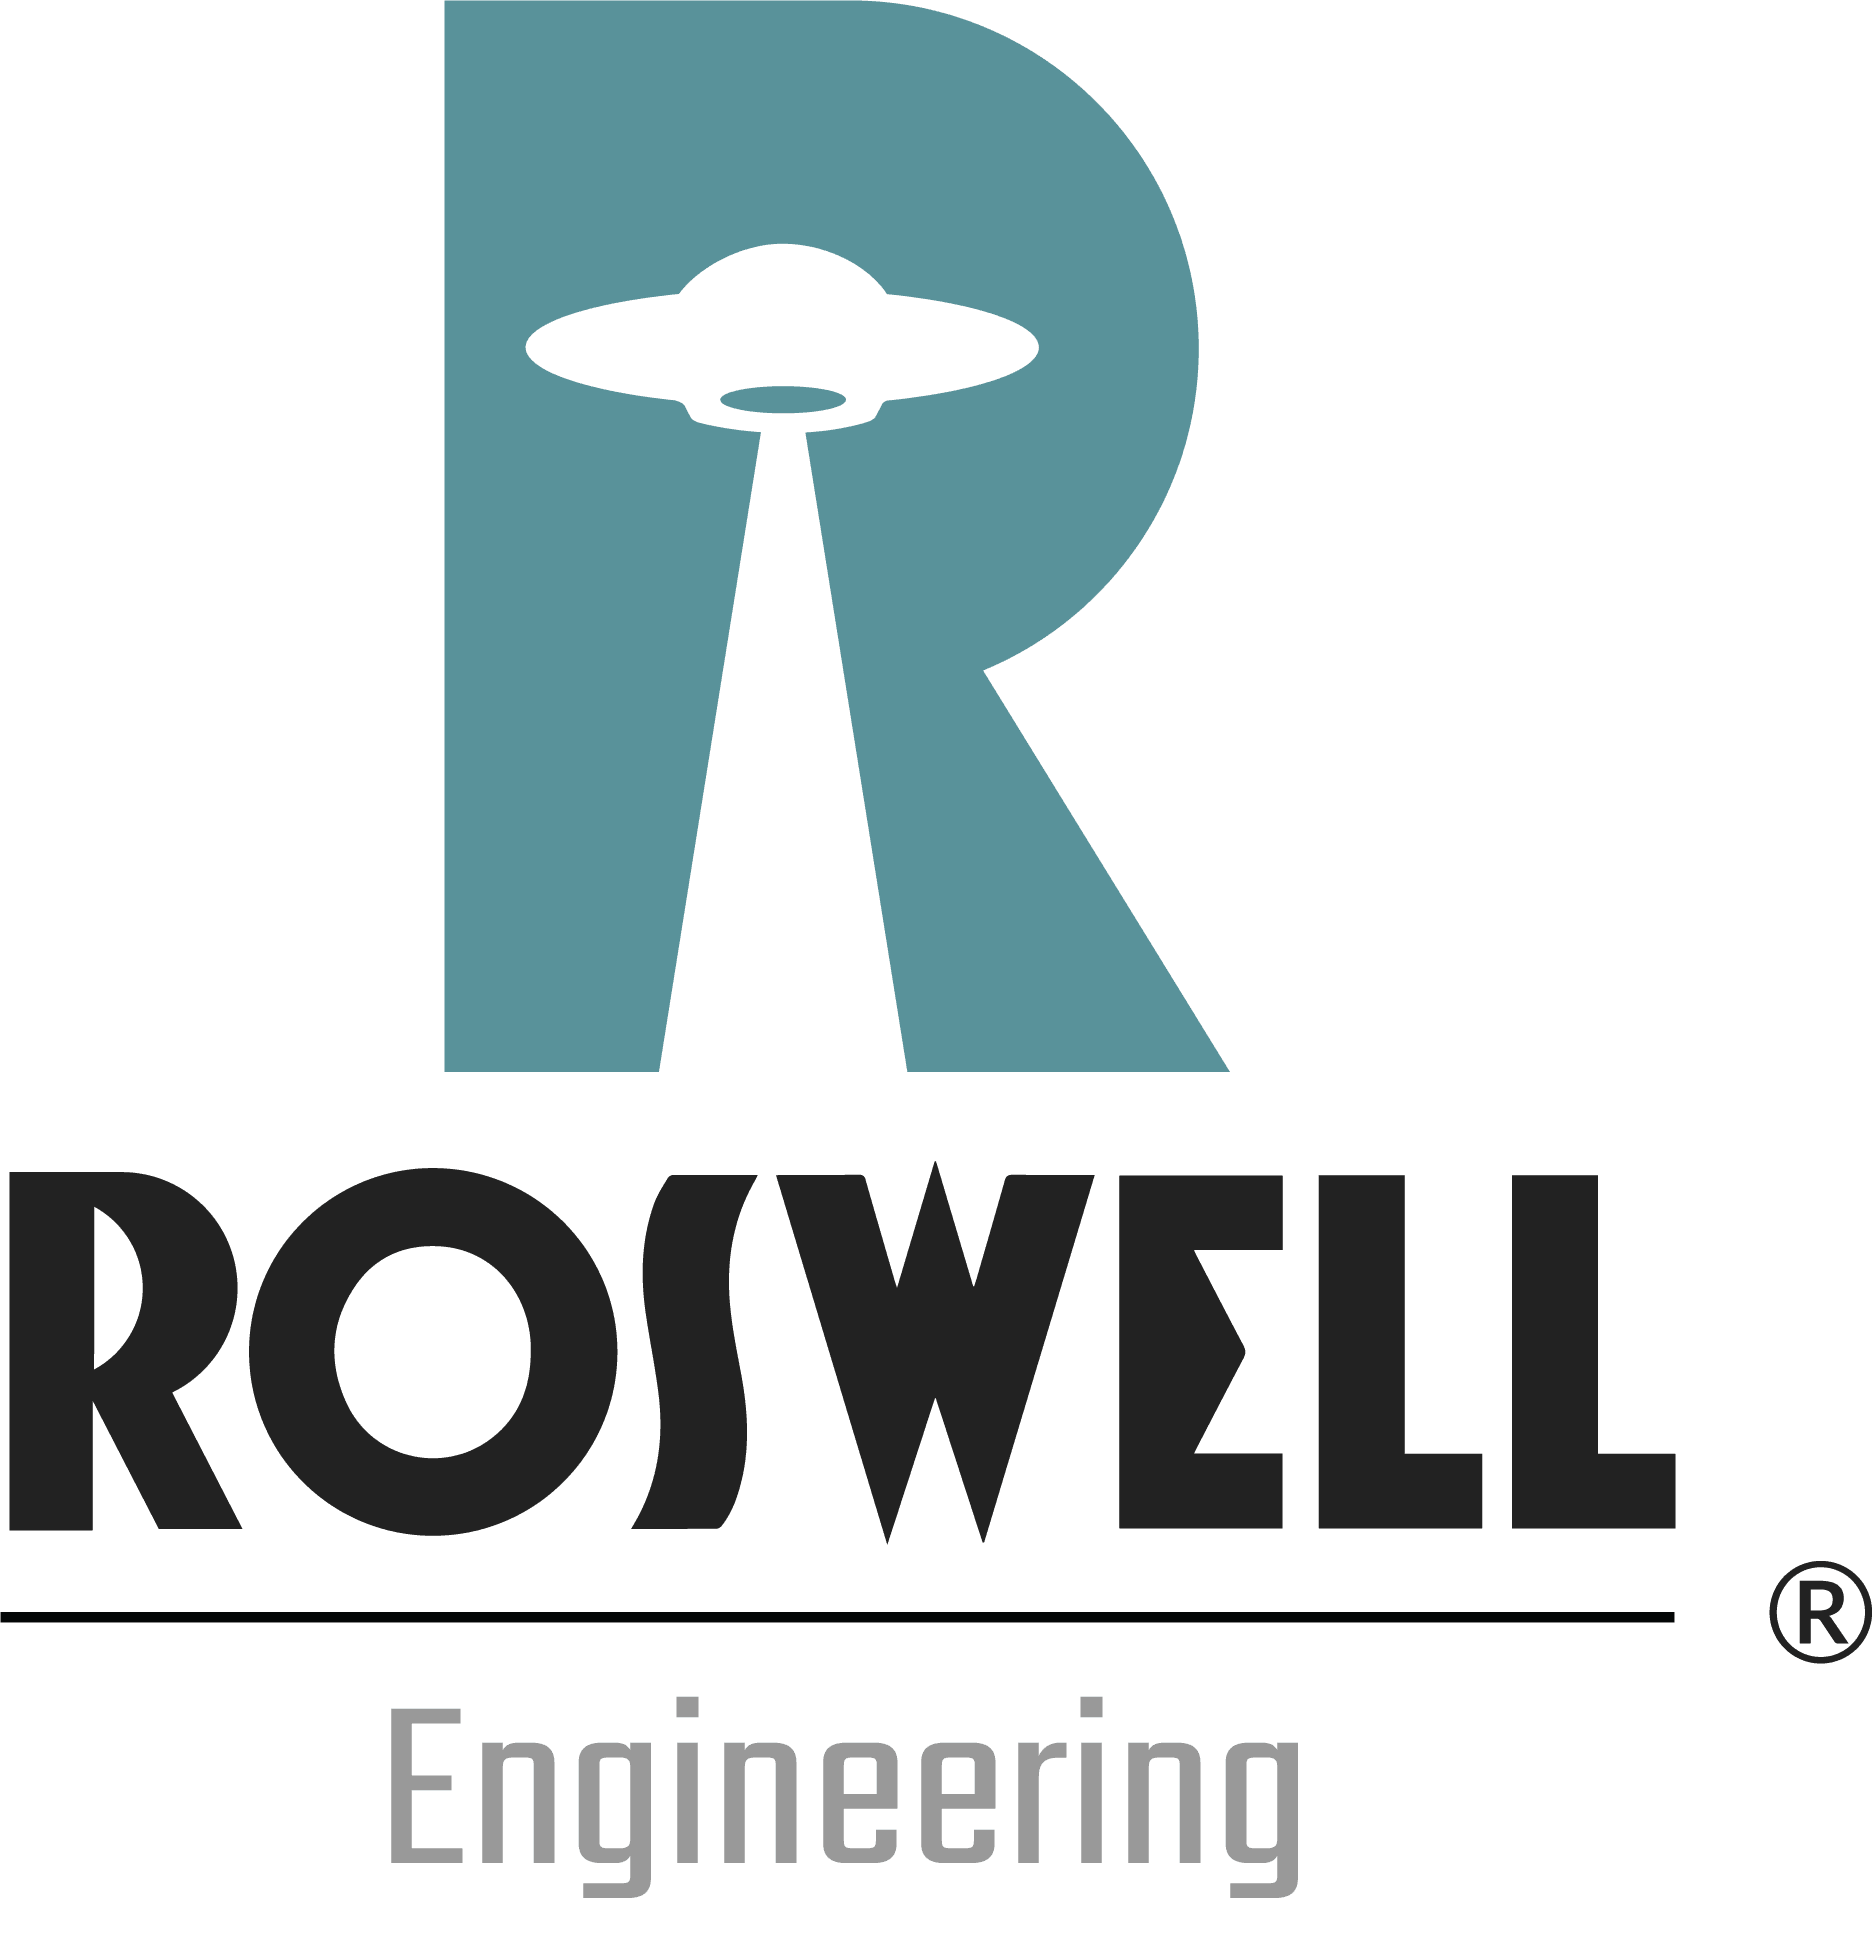 City of Roswell Engineering Logo